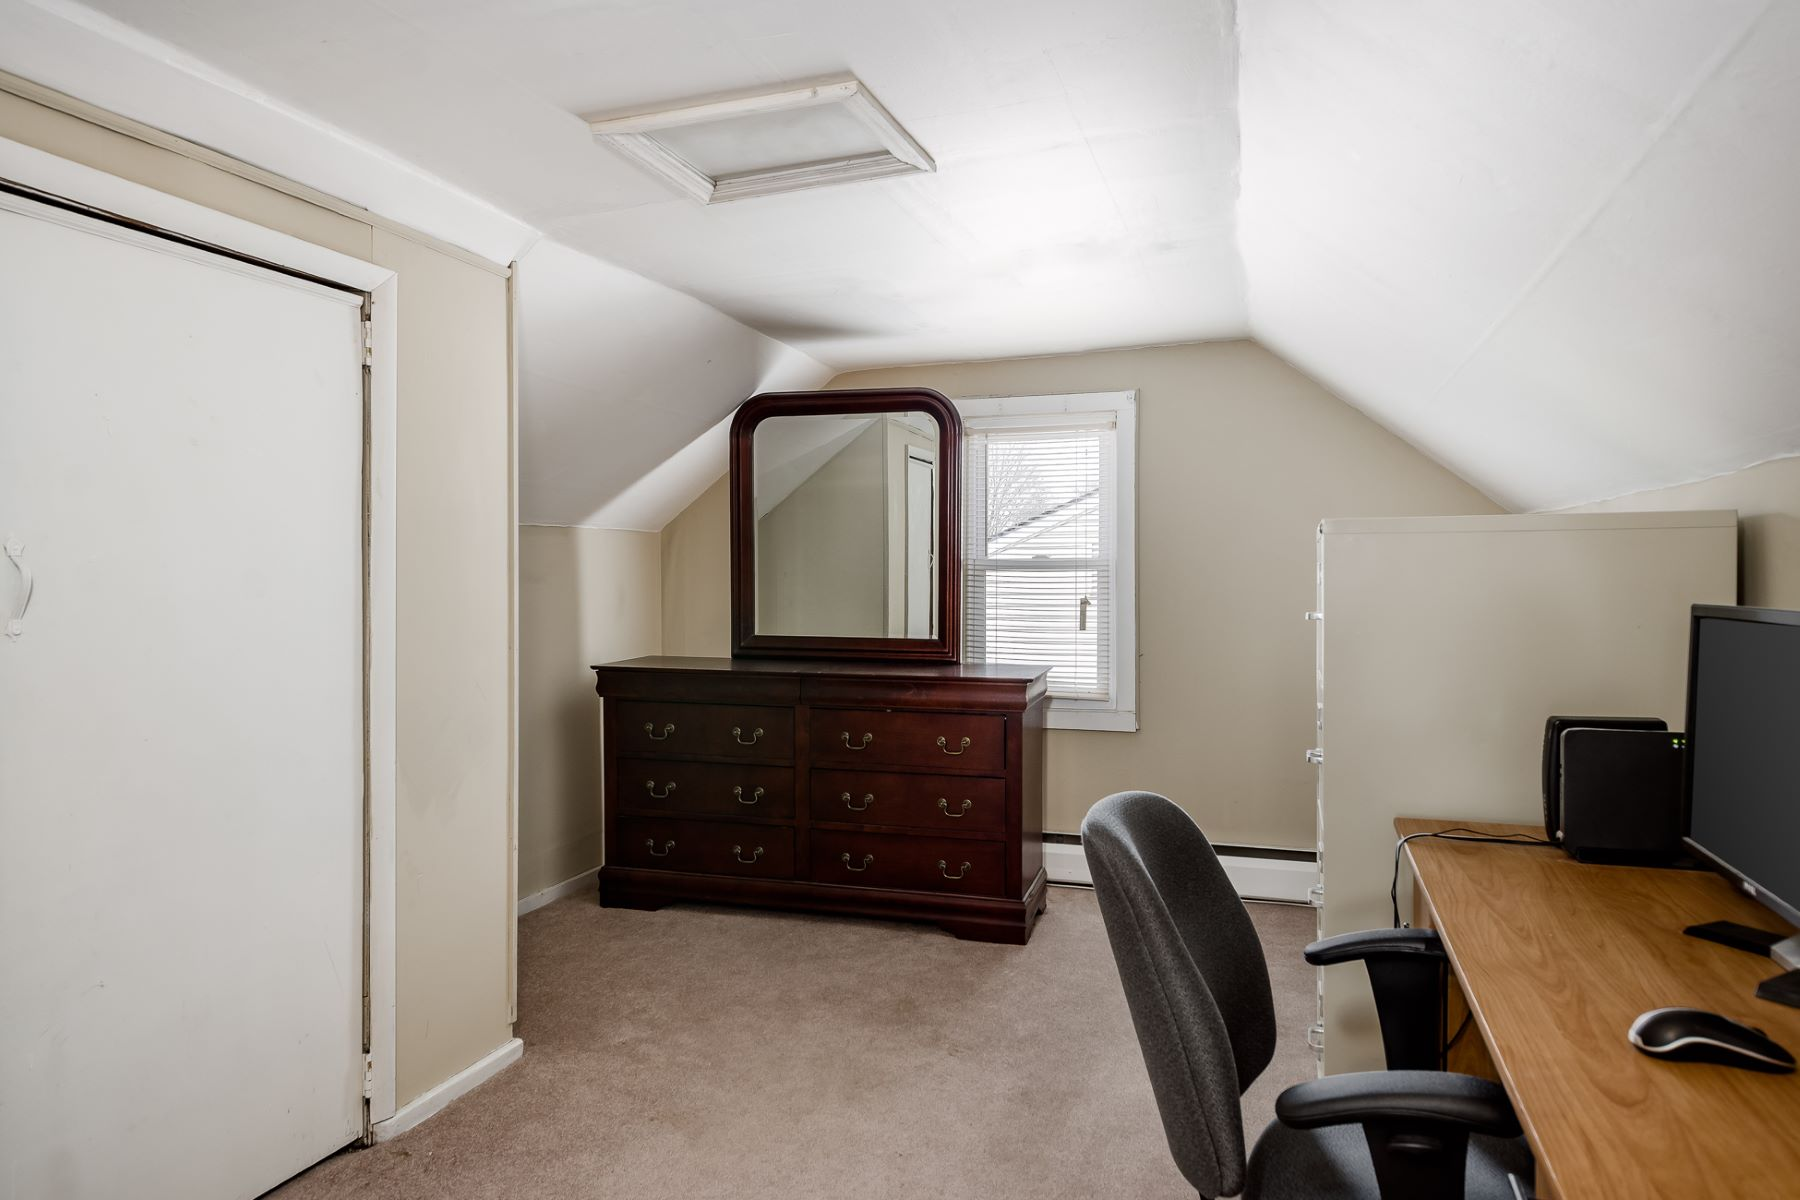 Additional photo for property listing at Adorable Cottage in Steinert School District 134 Hauser Avenue, Hamilton, New Jersey 08620 United States